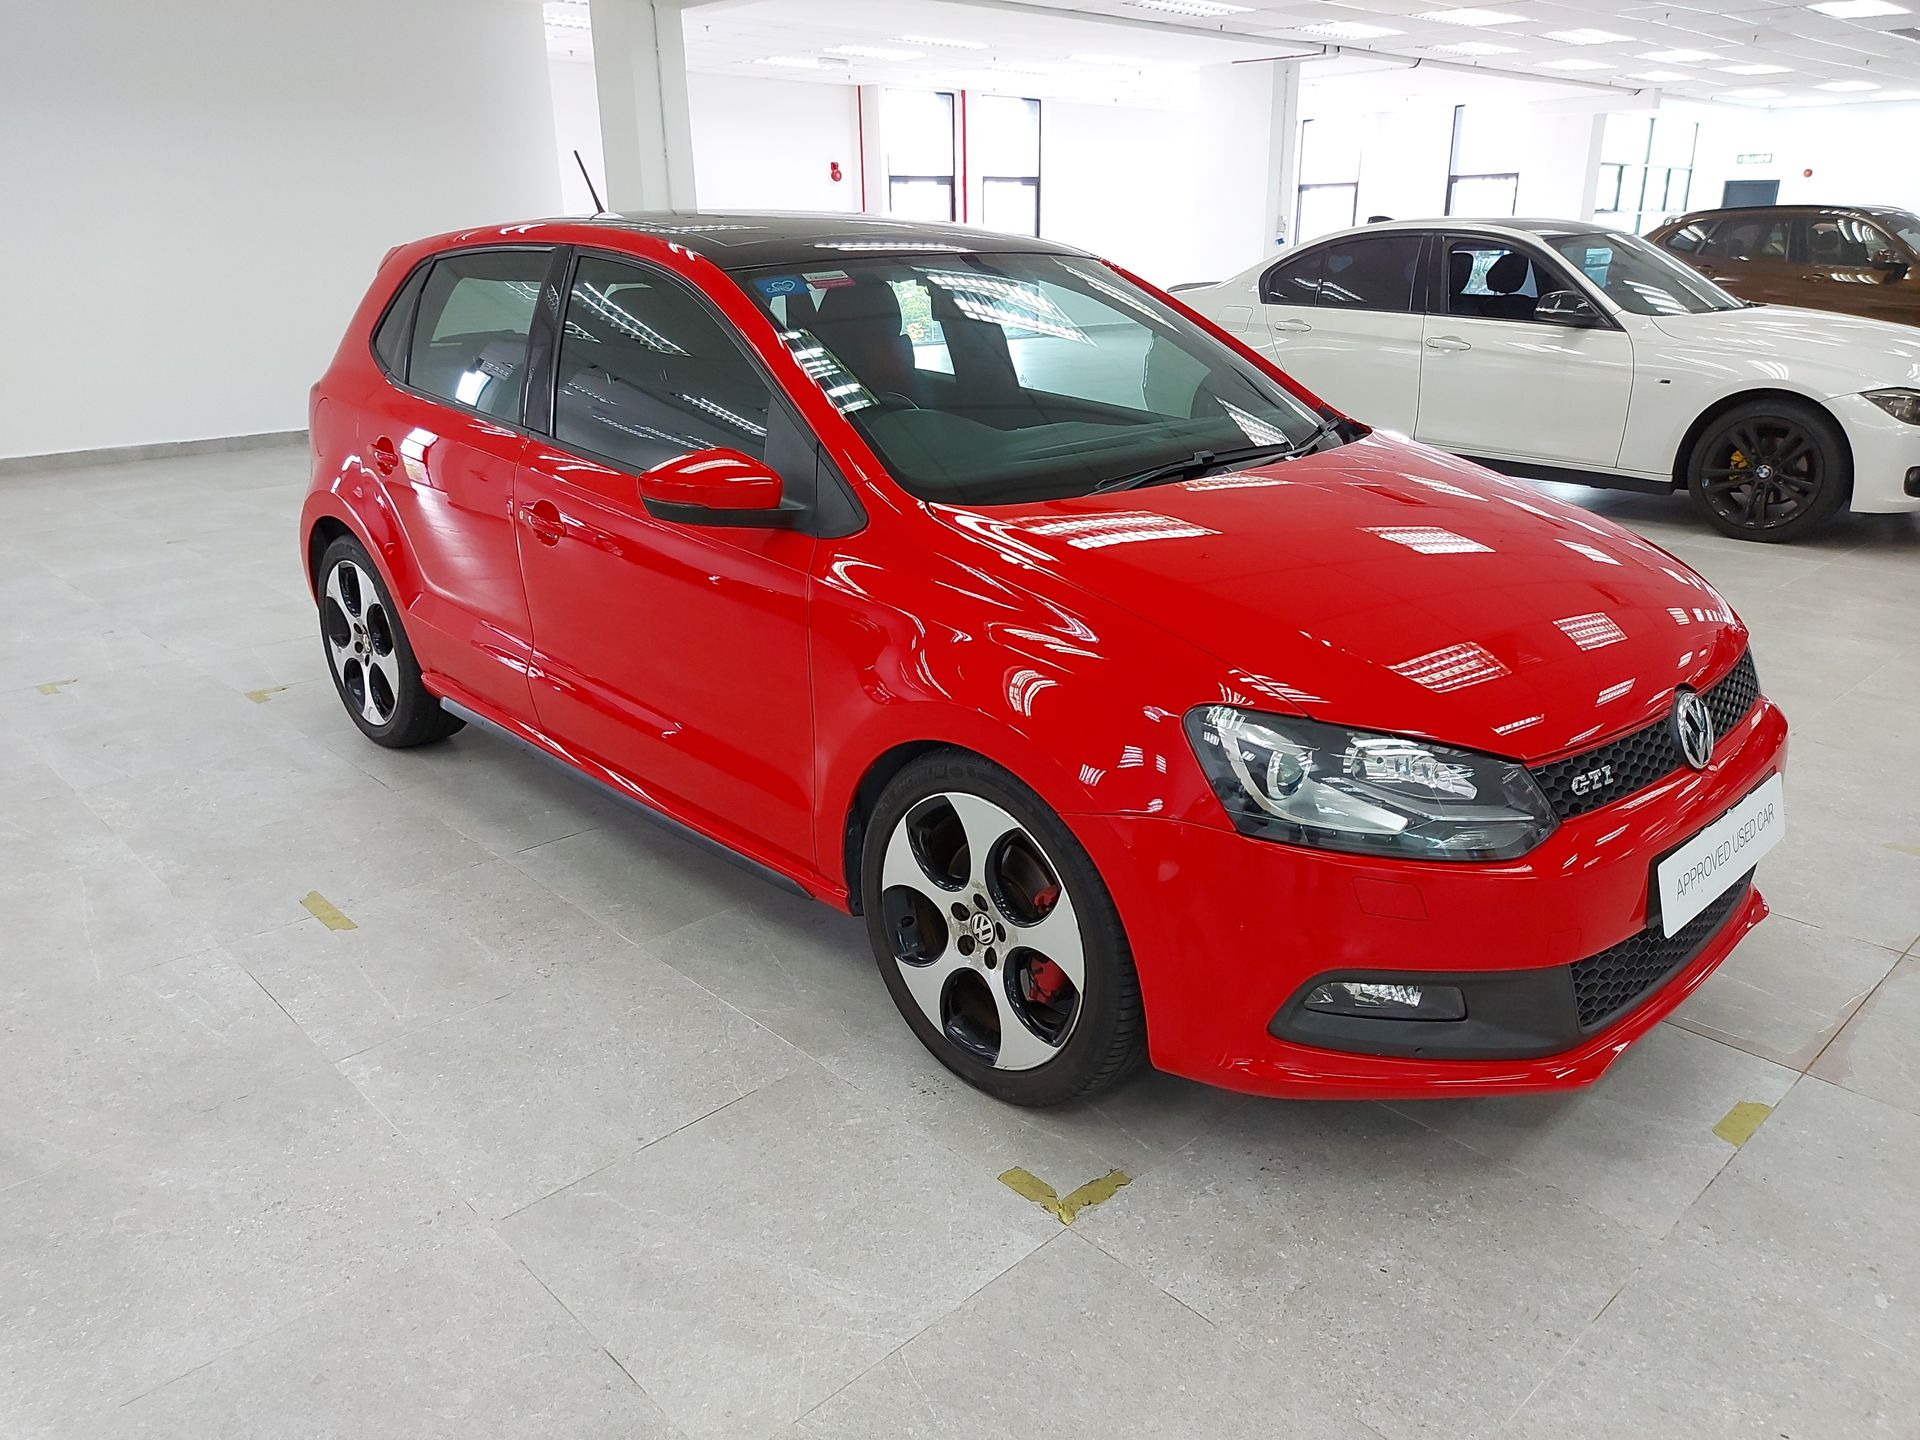 2012 Volkswagen Polo 1.4 AT